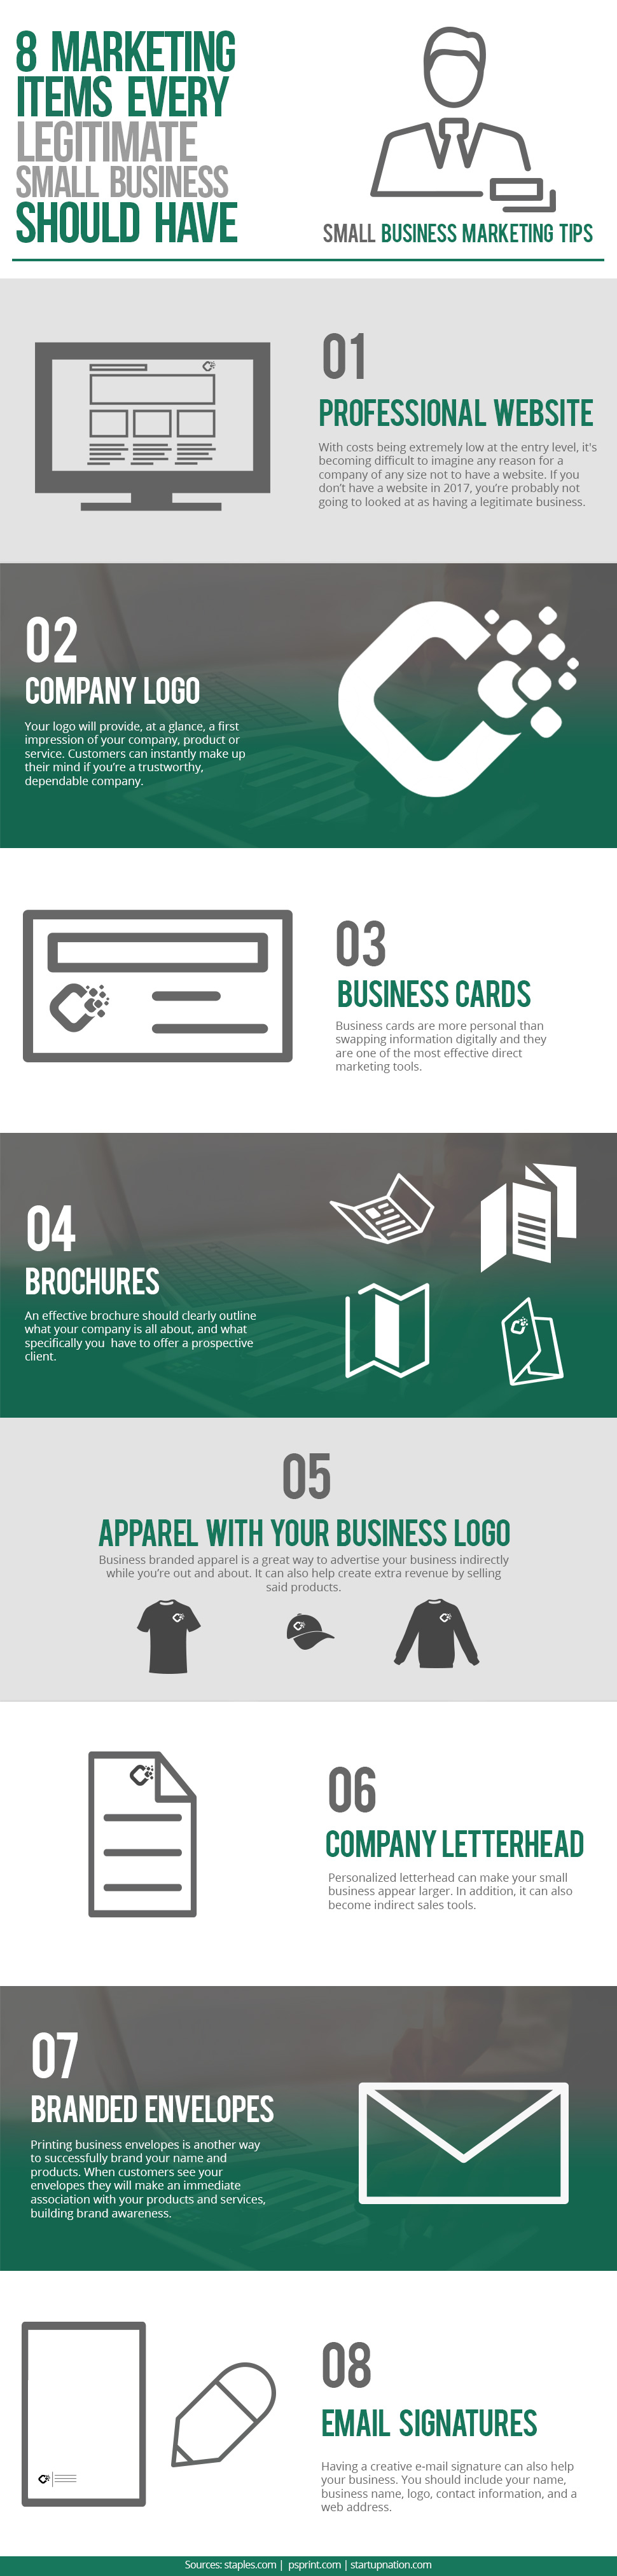 8 Items A Legitimate Small Business Must Have